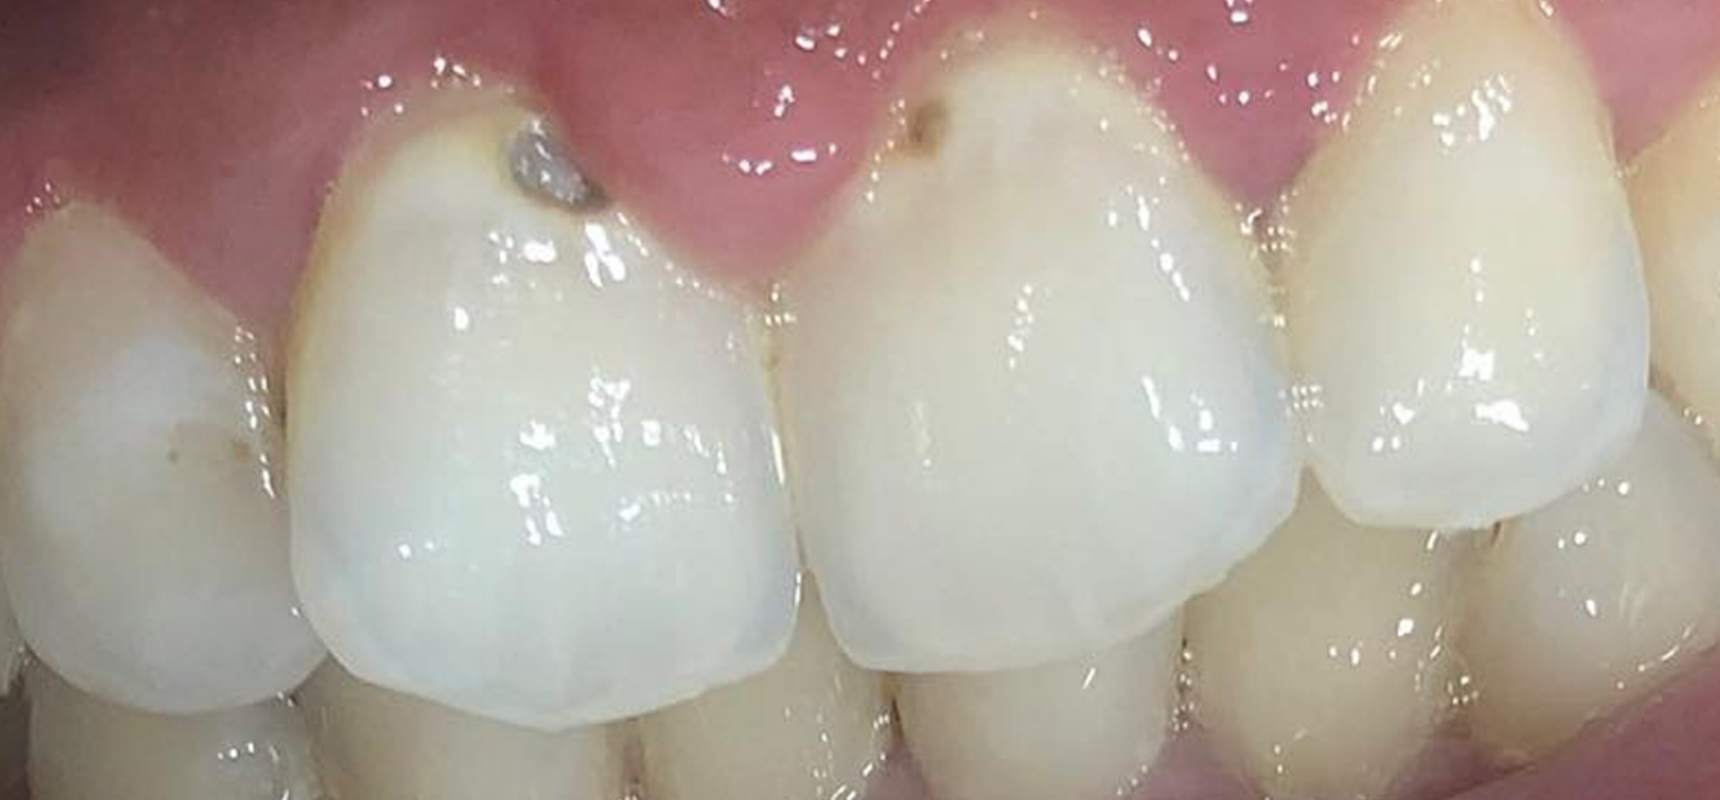 Before-Composite filling after removal of decay.